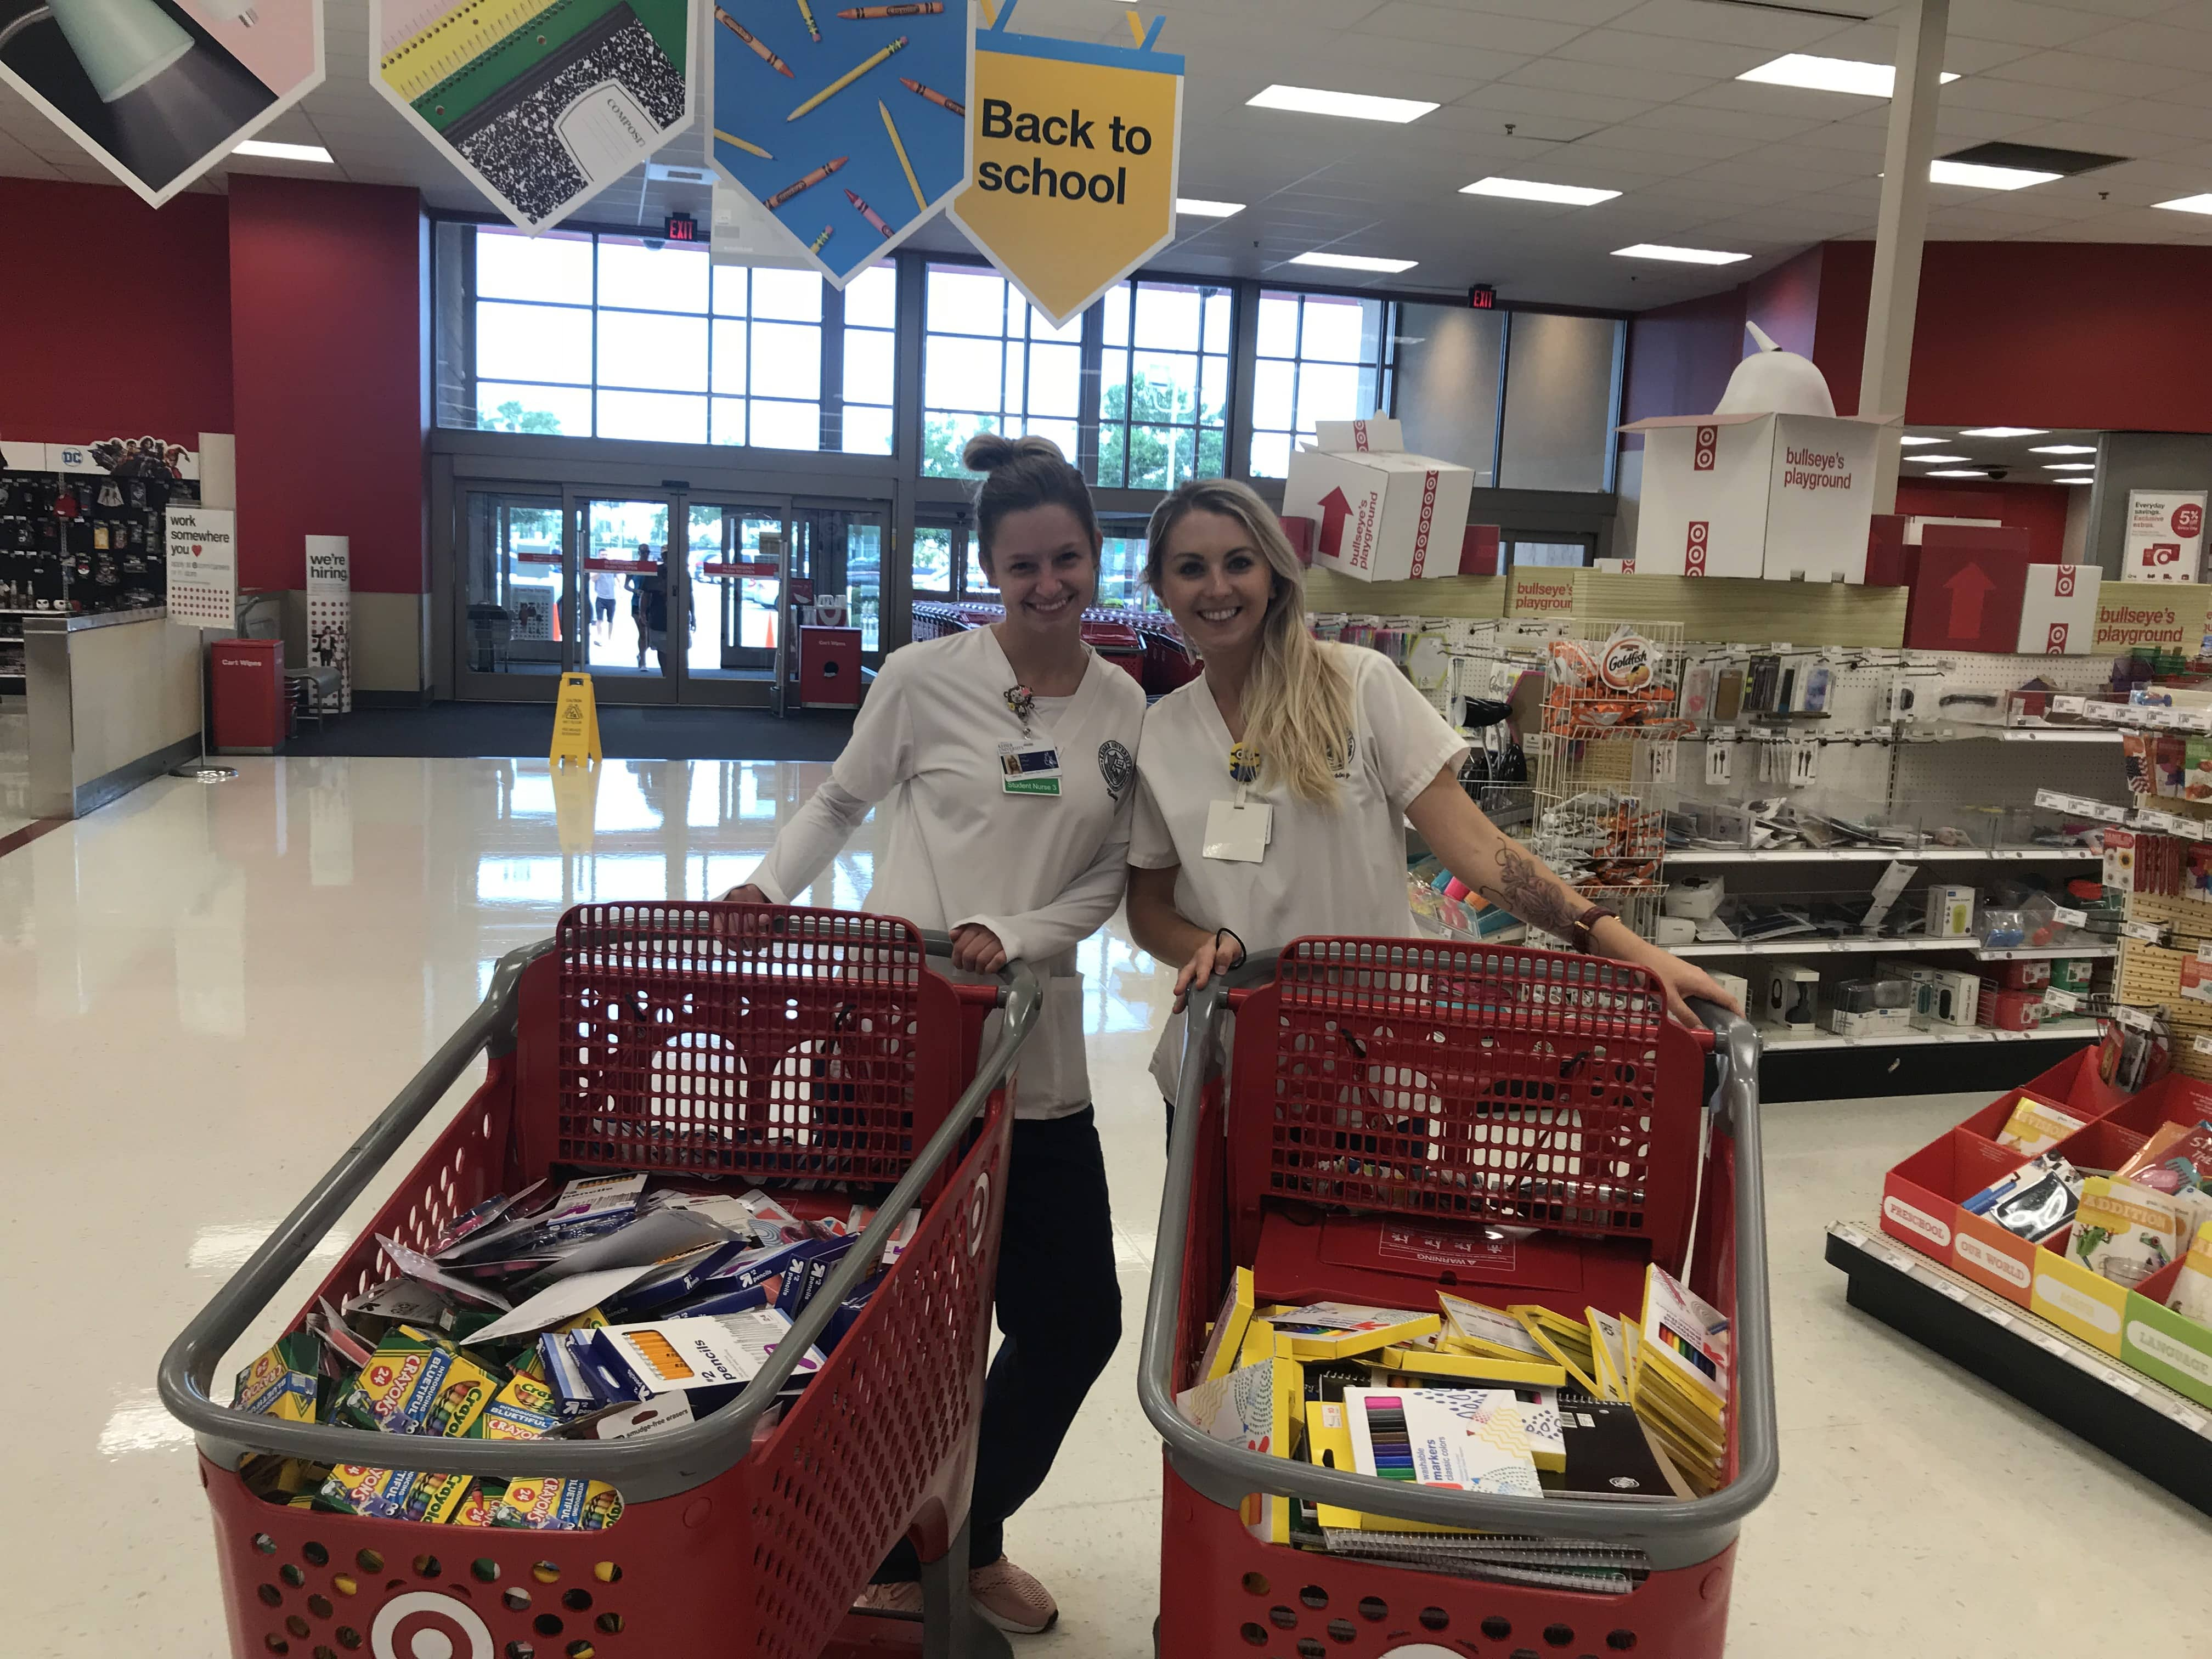 KU Sarasota Campus' Keiser Kits for Kids School Supply Drive Benefits Local Students